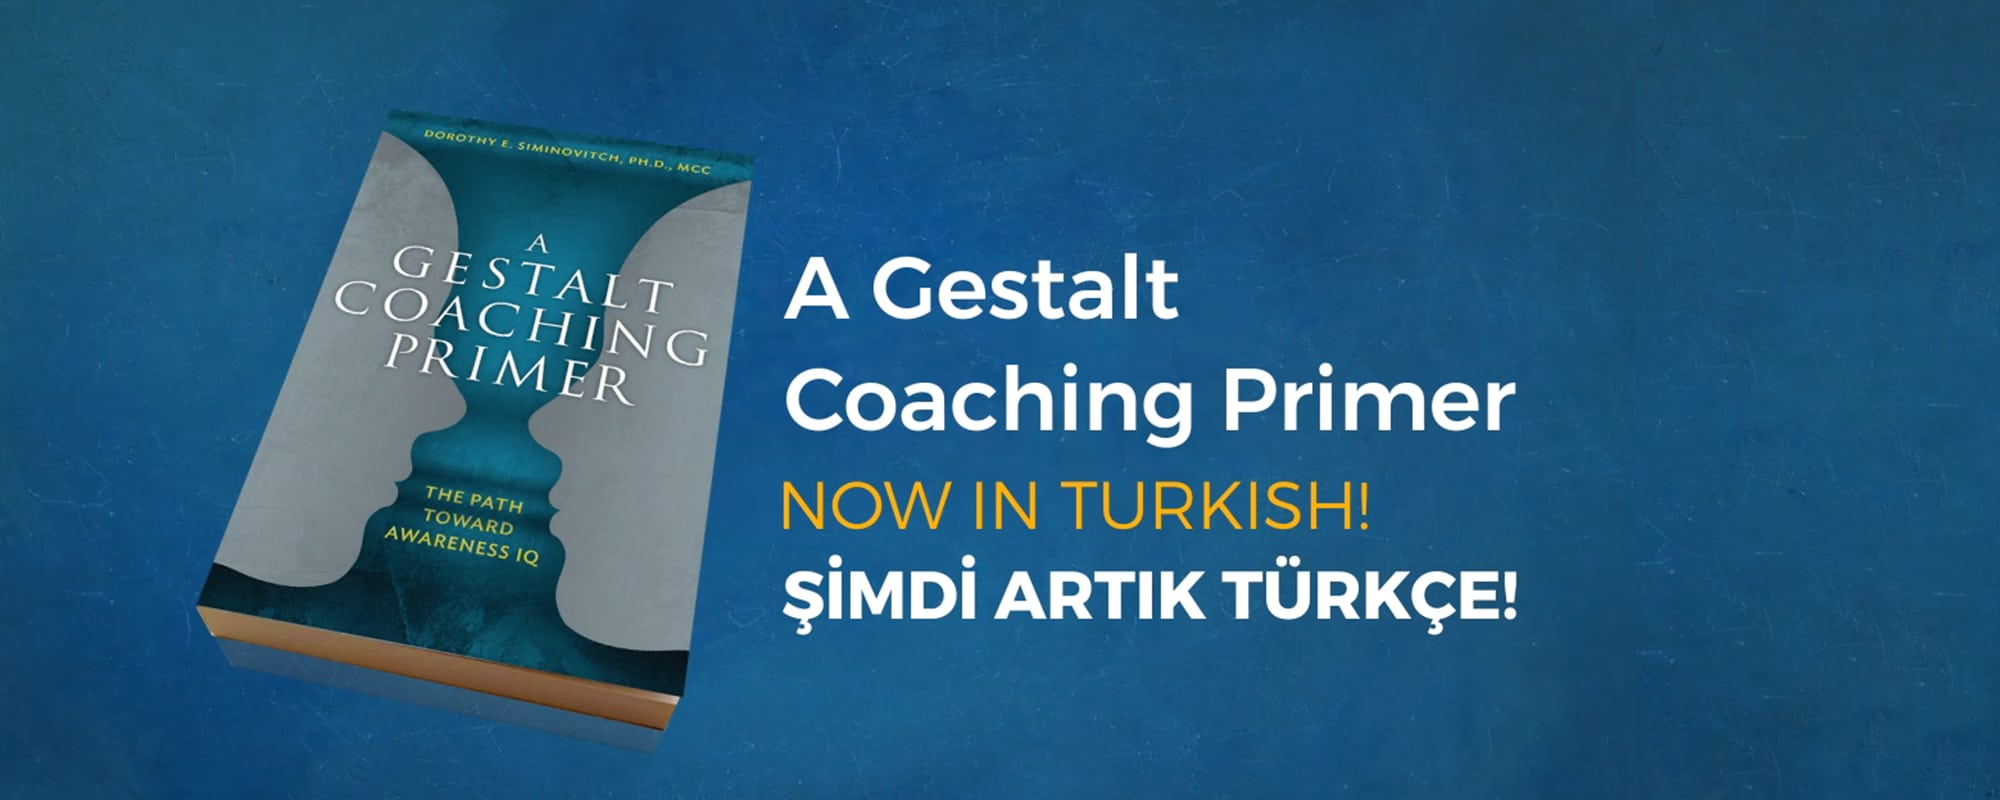 A-Gestalt-Coaching-Primer-Book-Slider